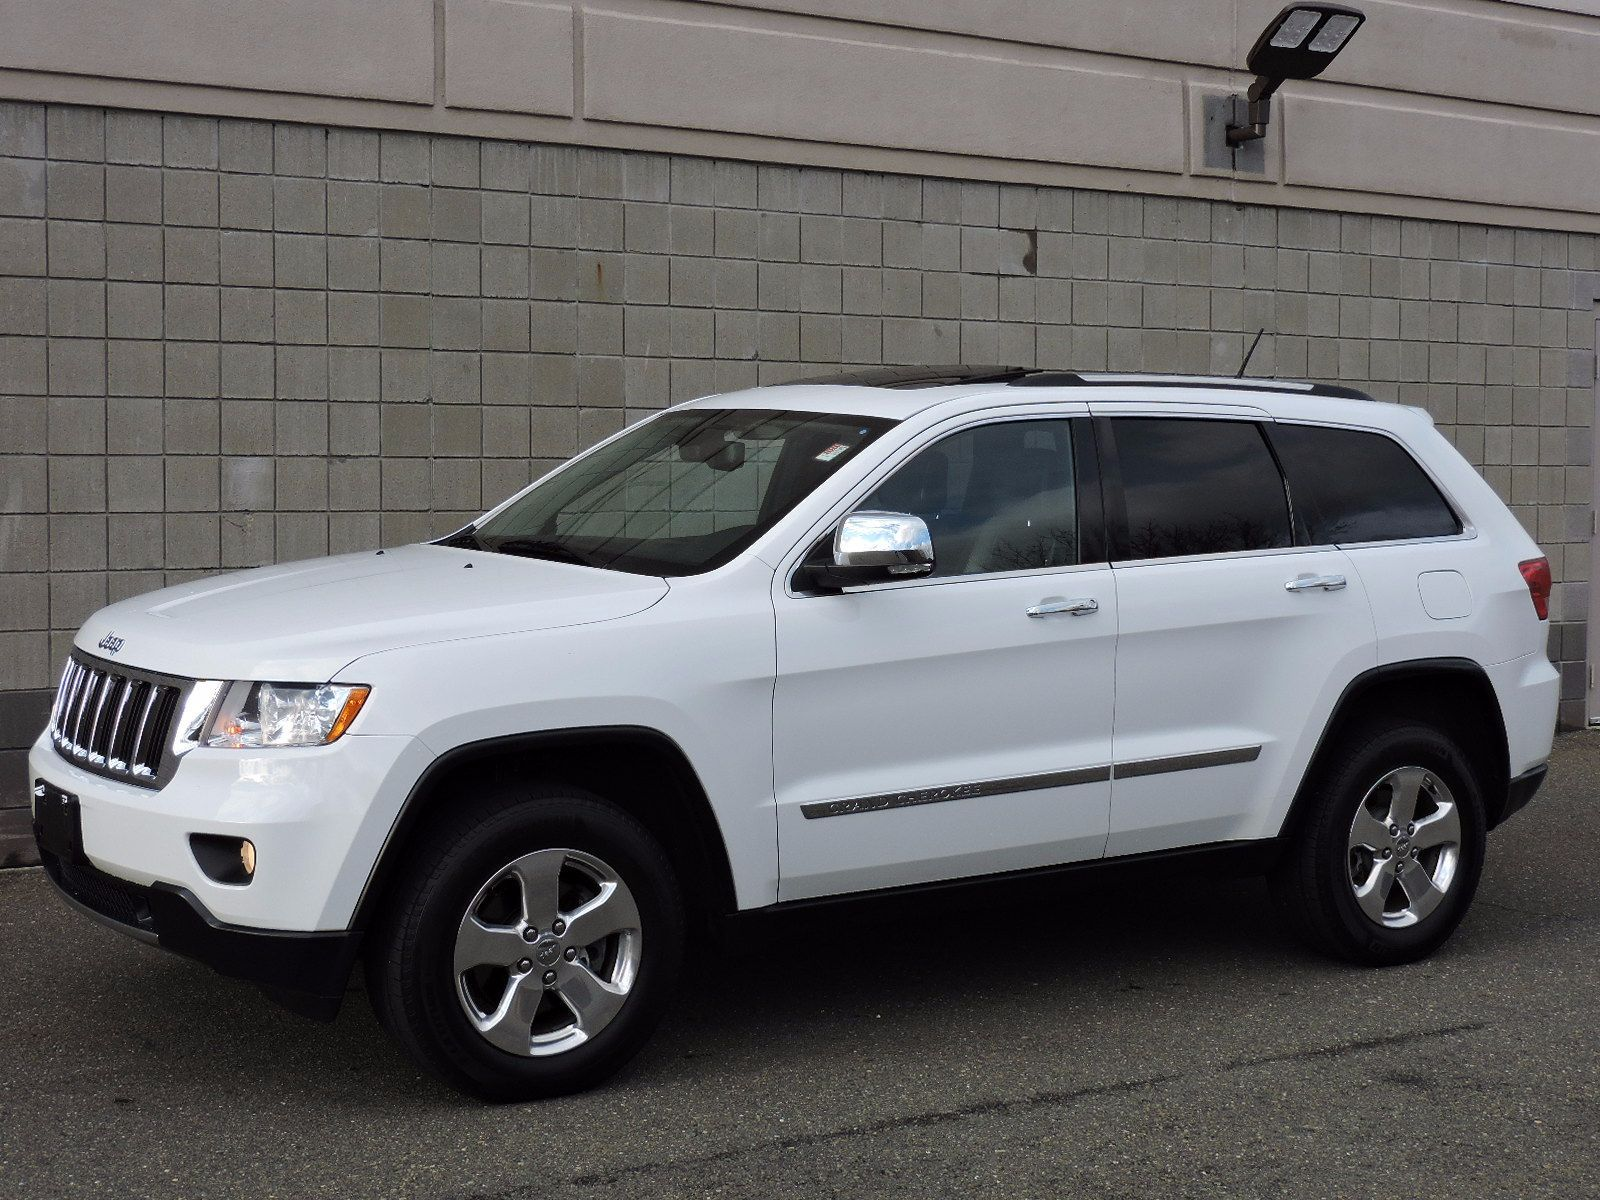 used 2013 jeep grand cherokee limited at auto house usa saugus. Black Bedroom Furniture Sets. Home Design Ideas